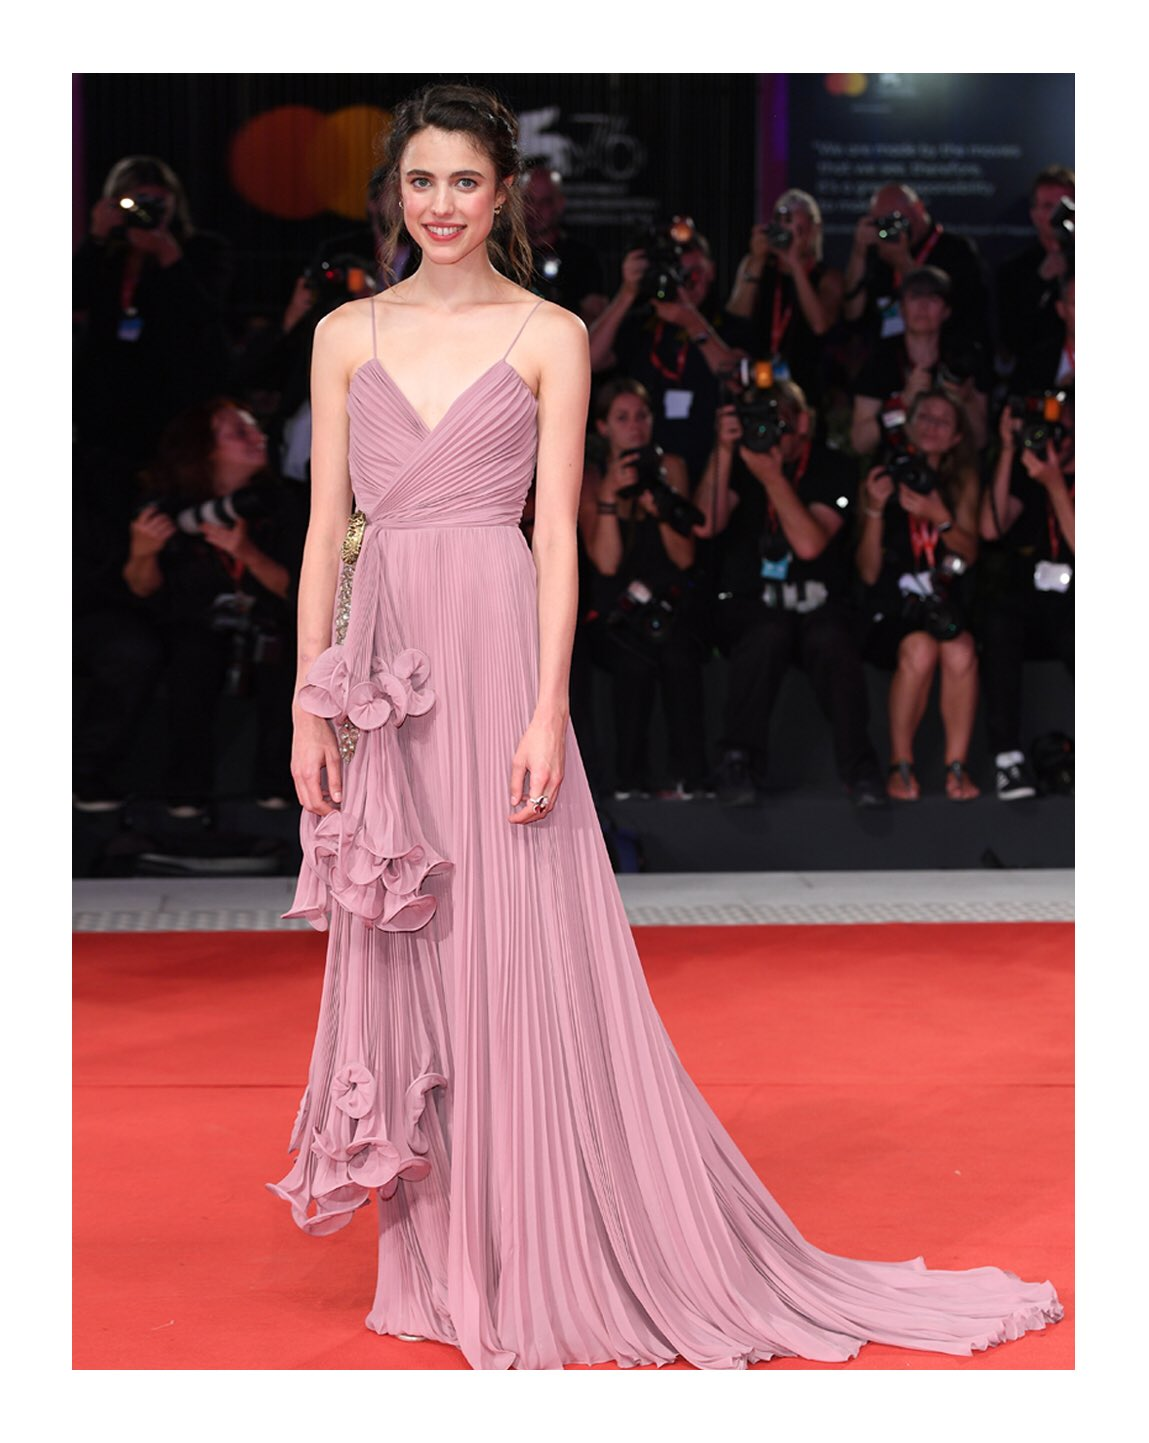 To the 76th Venice Film Festival, @MargaretQualley attended the screening of 'Seberg' in a silk georgette plissé gown with tiered gathered front and gold metallic head brooch from #GucciCruise20 by #AlessandroMichele. #MargaretQualley #BiennaleCinema2019 #Venezia76 https://t.co/f0Z9tom1PG